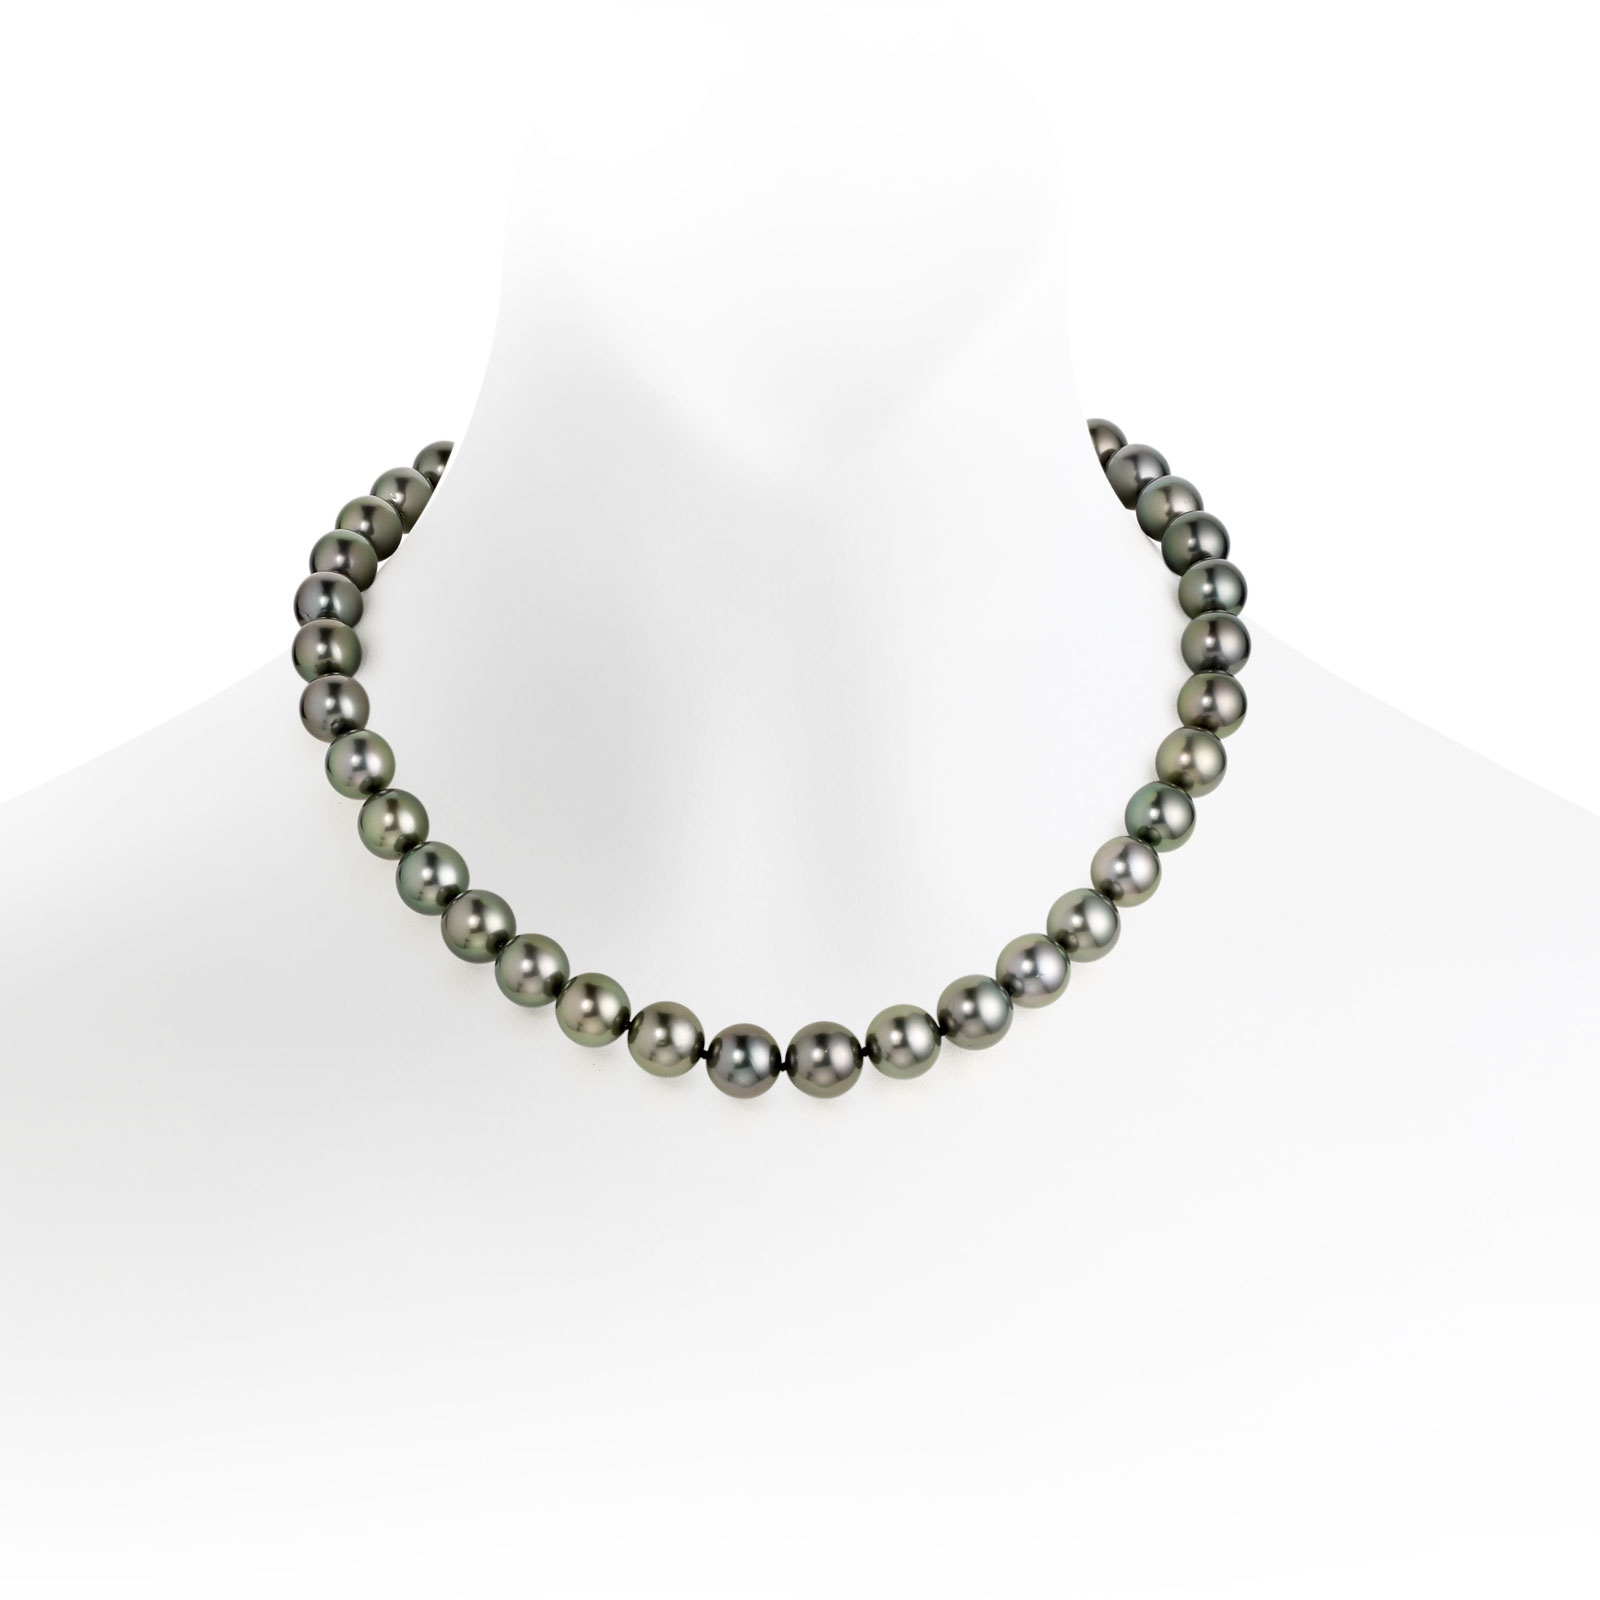 Grey Tahitian Pearl Choker Necklace with 18ct White Gold Ring Clasp-TNGRWG0088-1